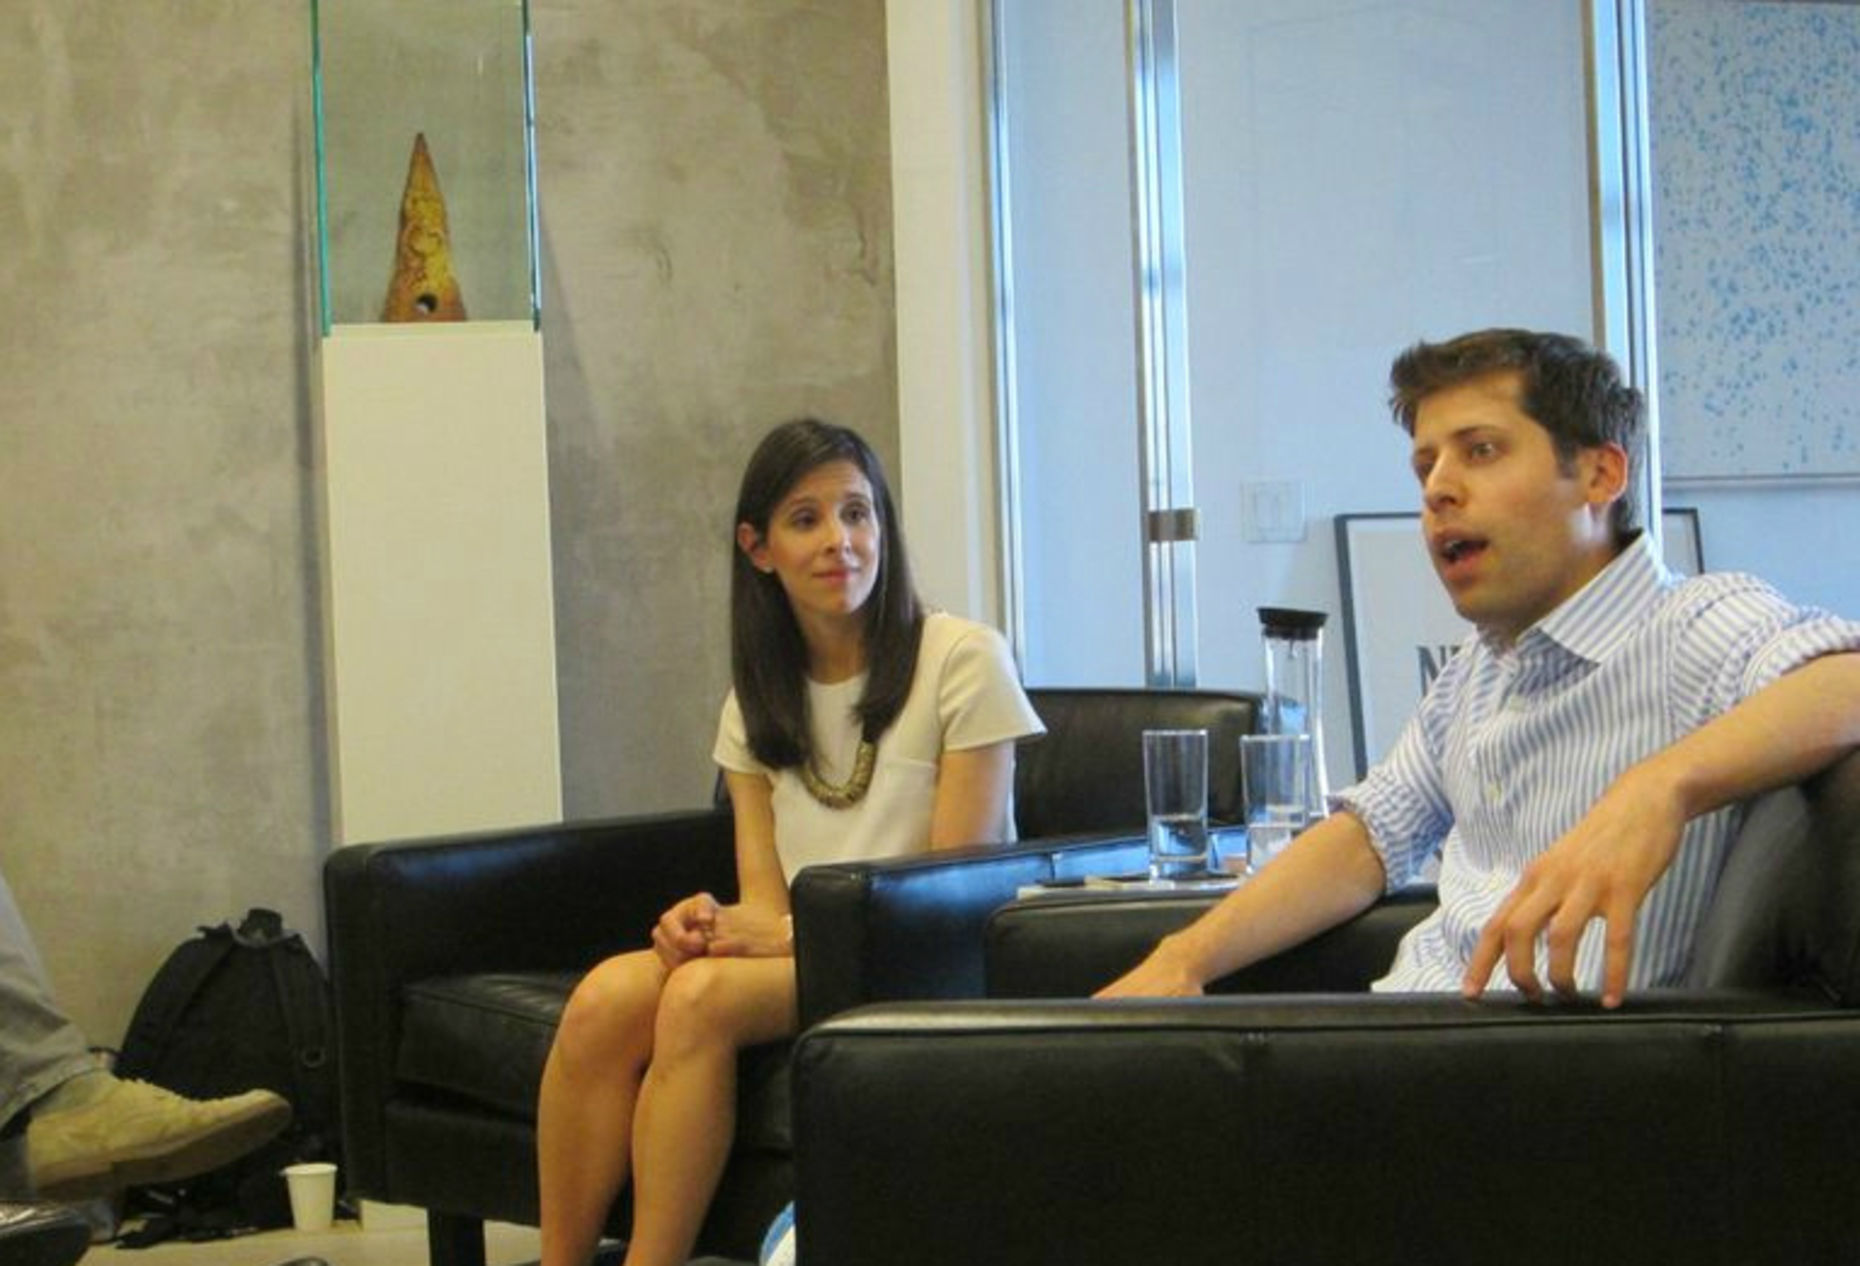 Jessica Lessin and Sam Altman at The Information's event in New York.